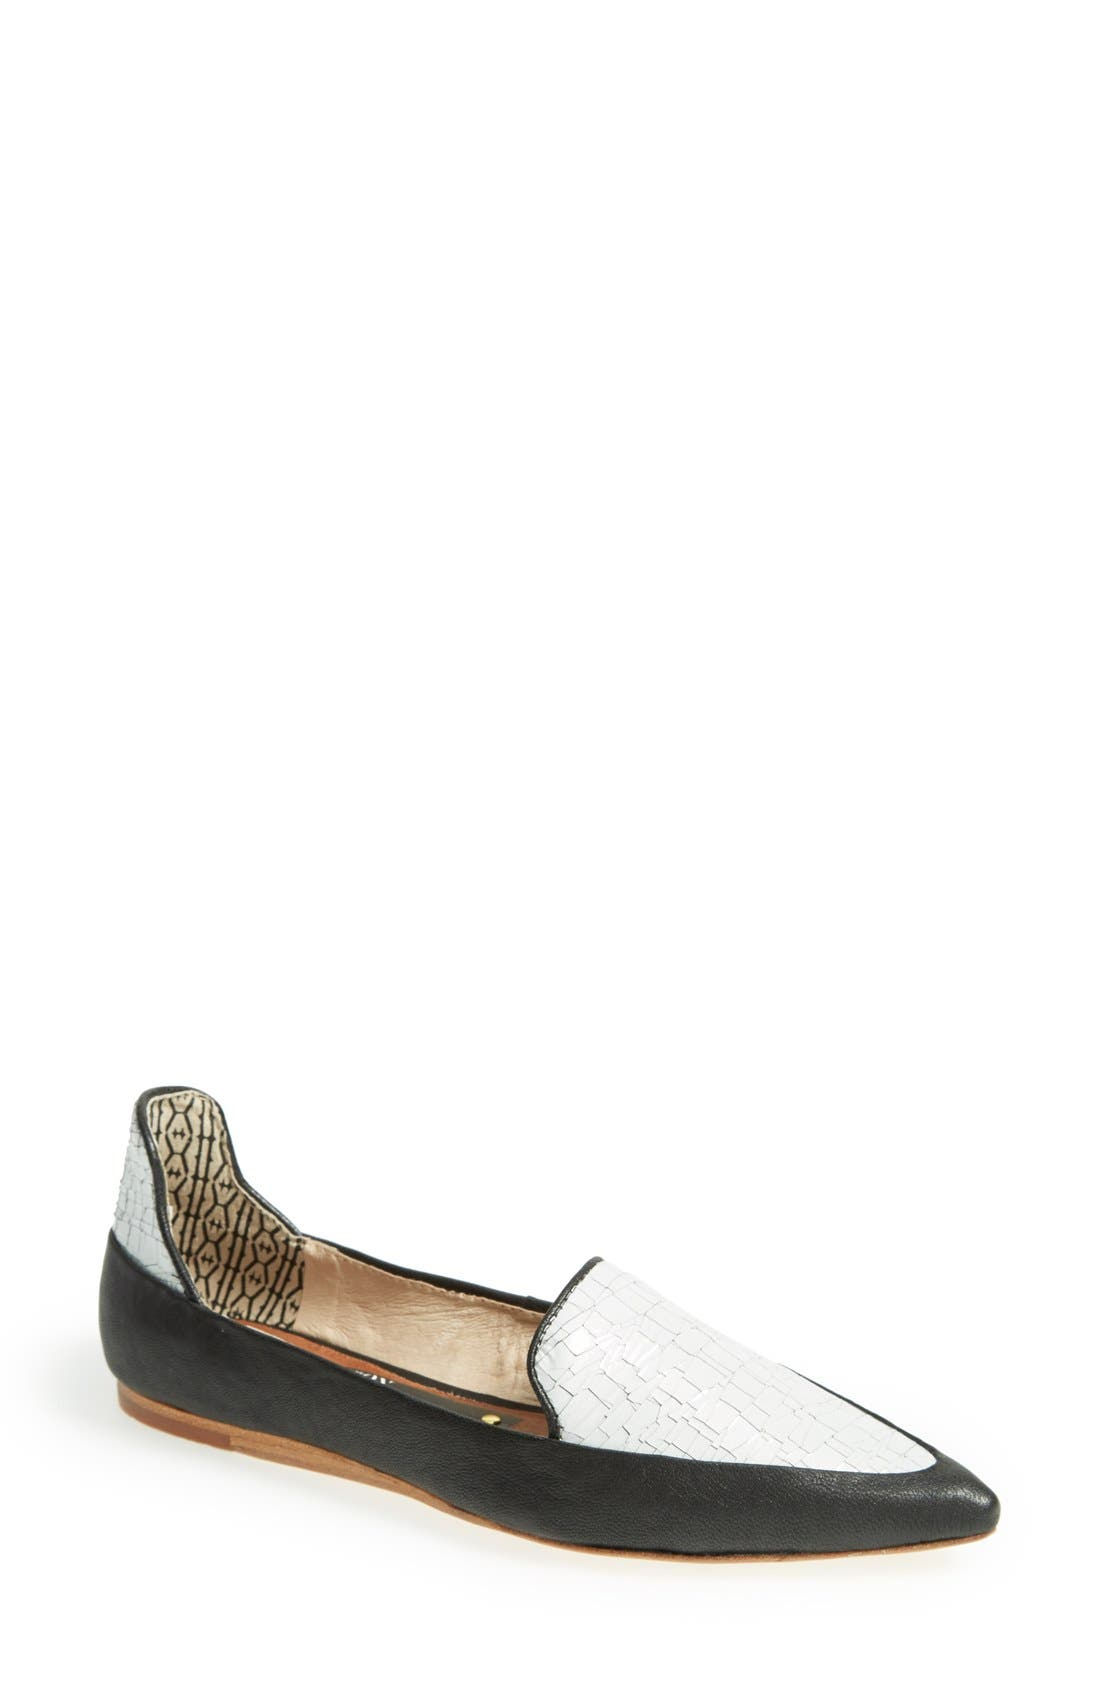 Main Image - Matt Bernson 'Verona' Leather Loafer (Women)